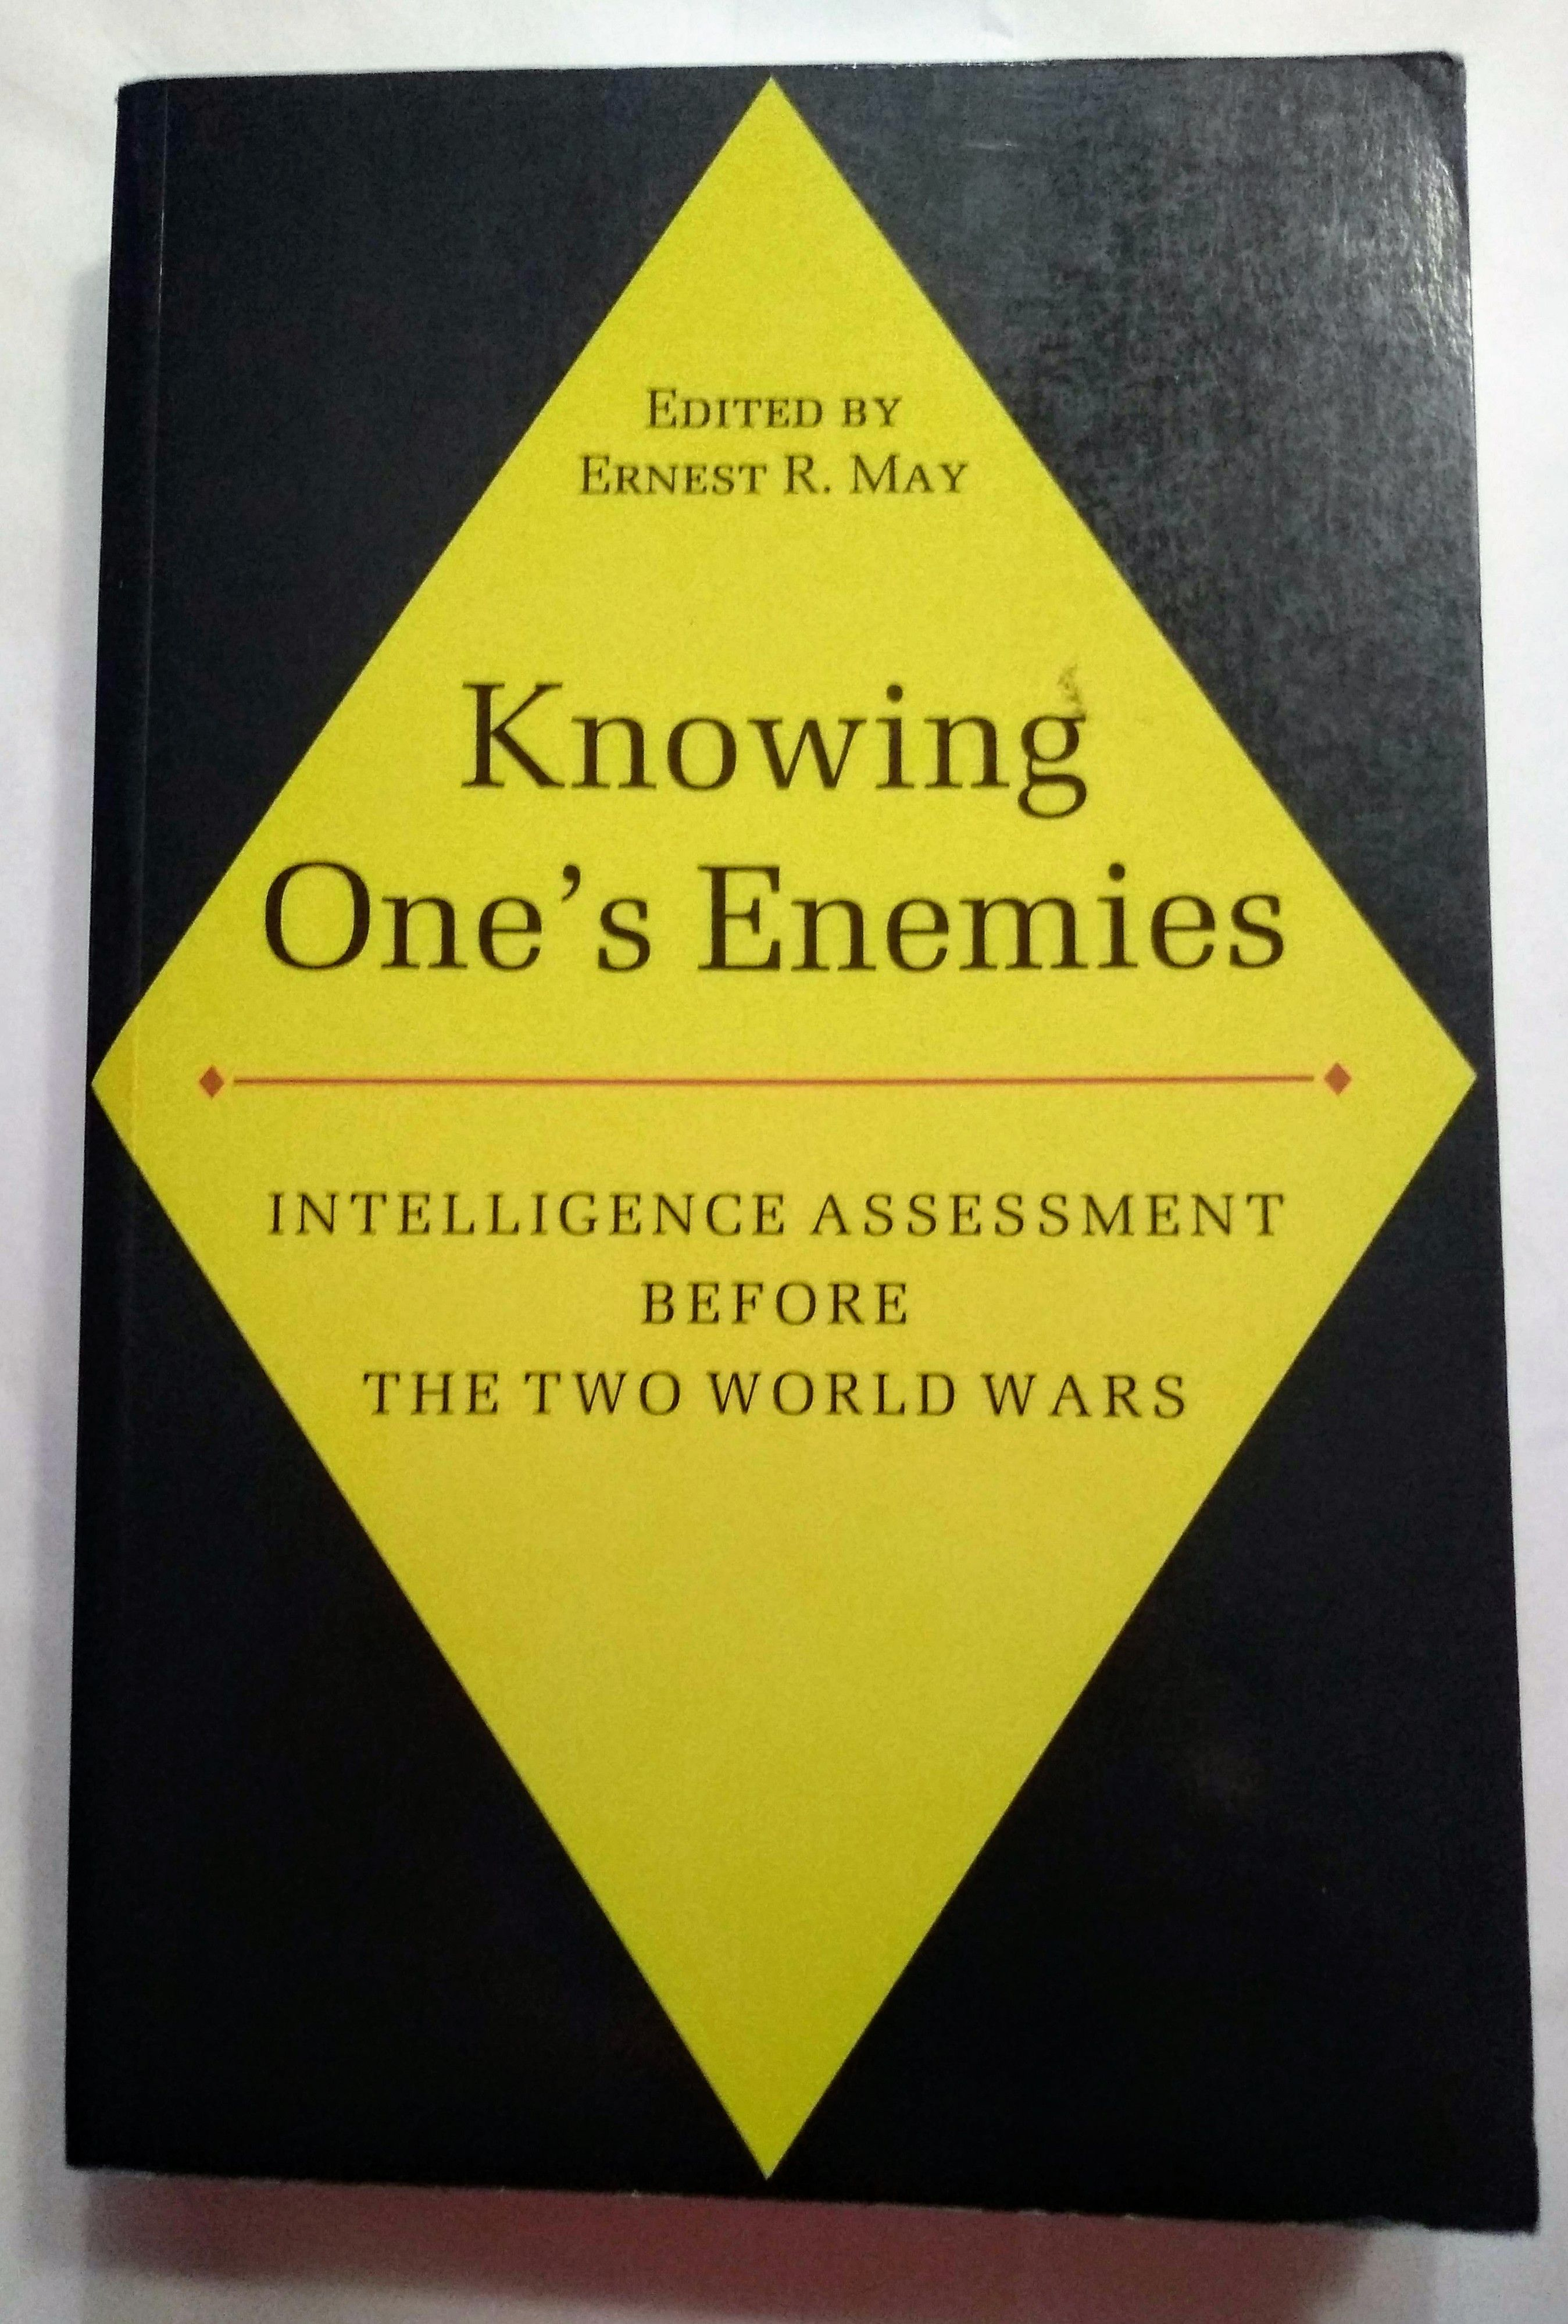 Knowing One's Enemies: Intelligence Assessment Before the Two World Wars